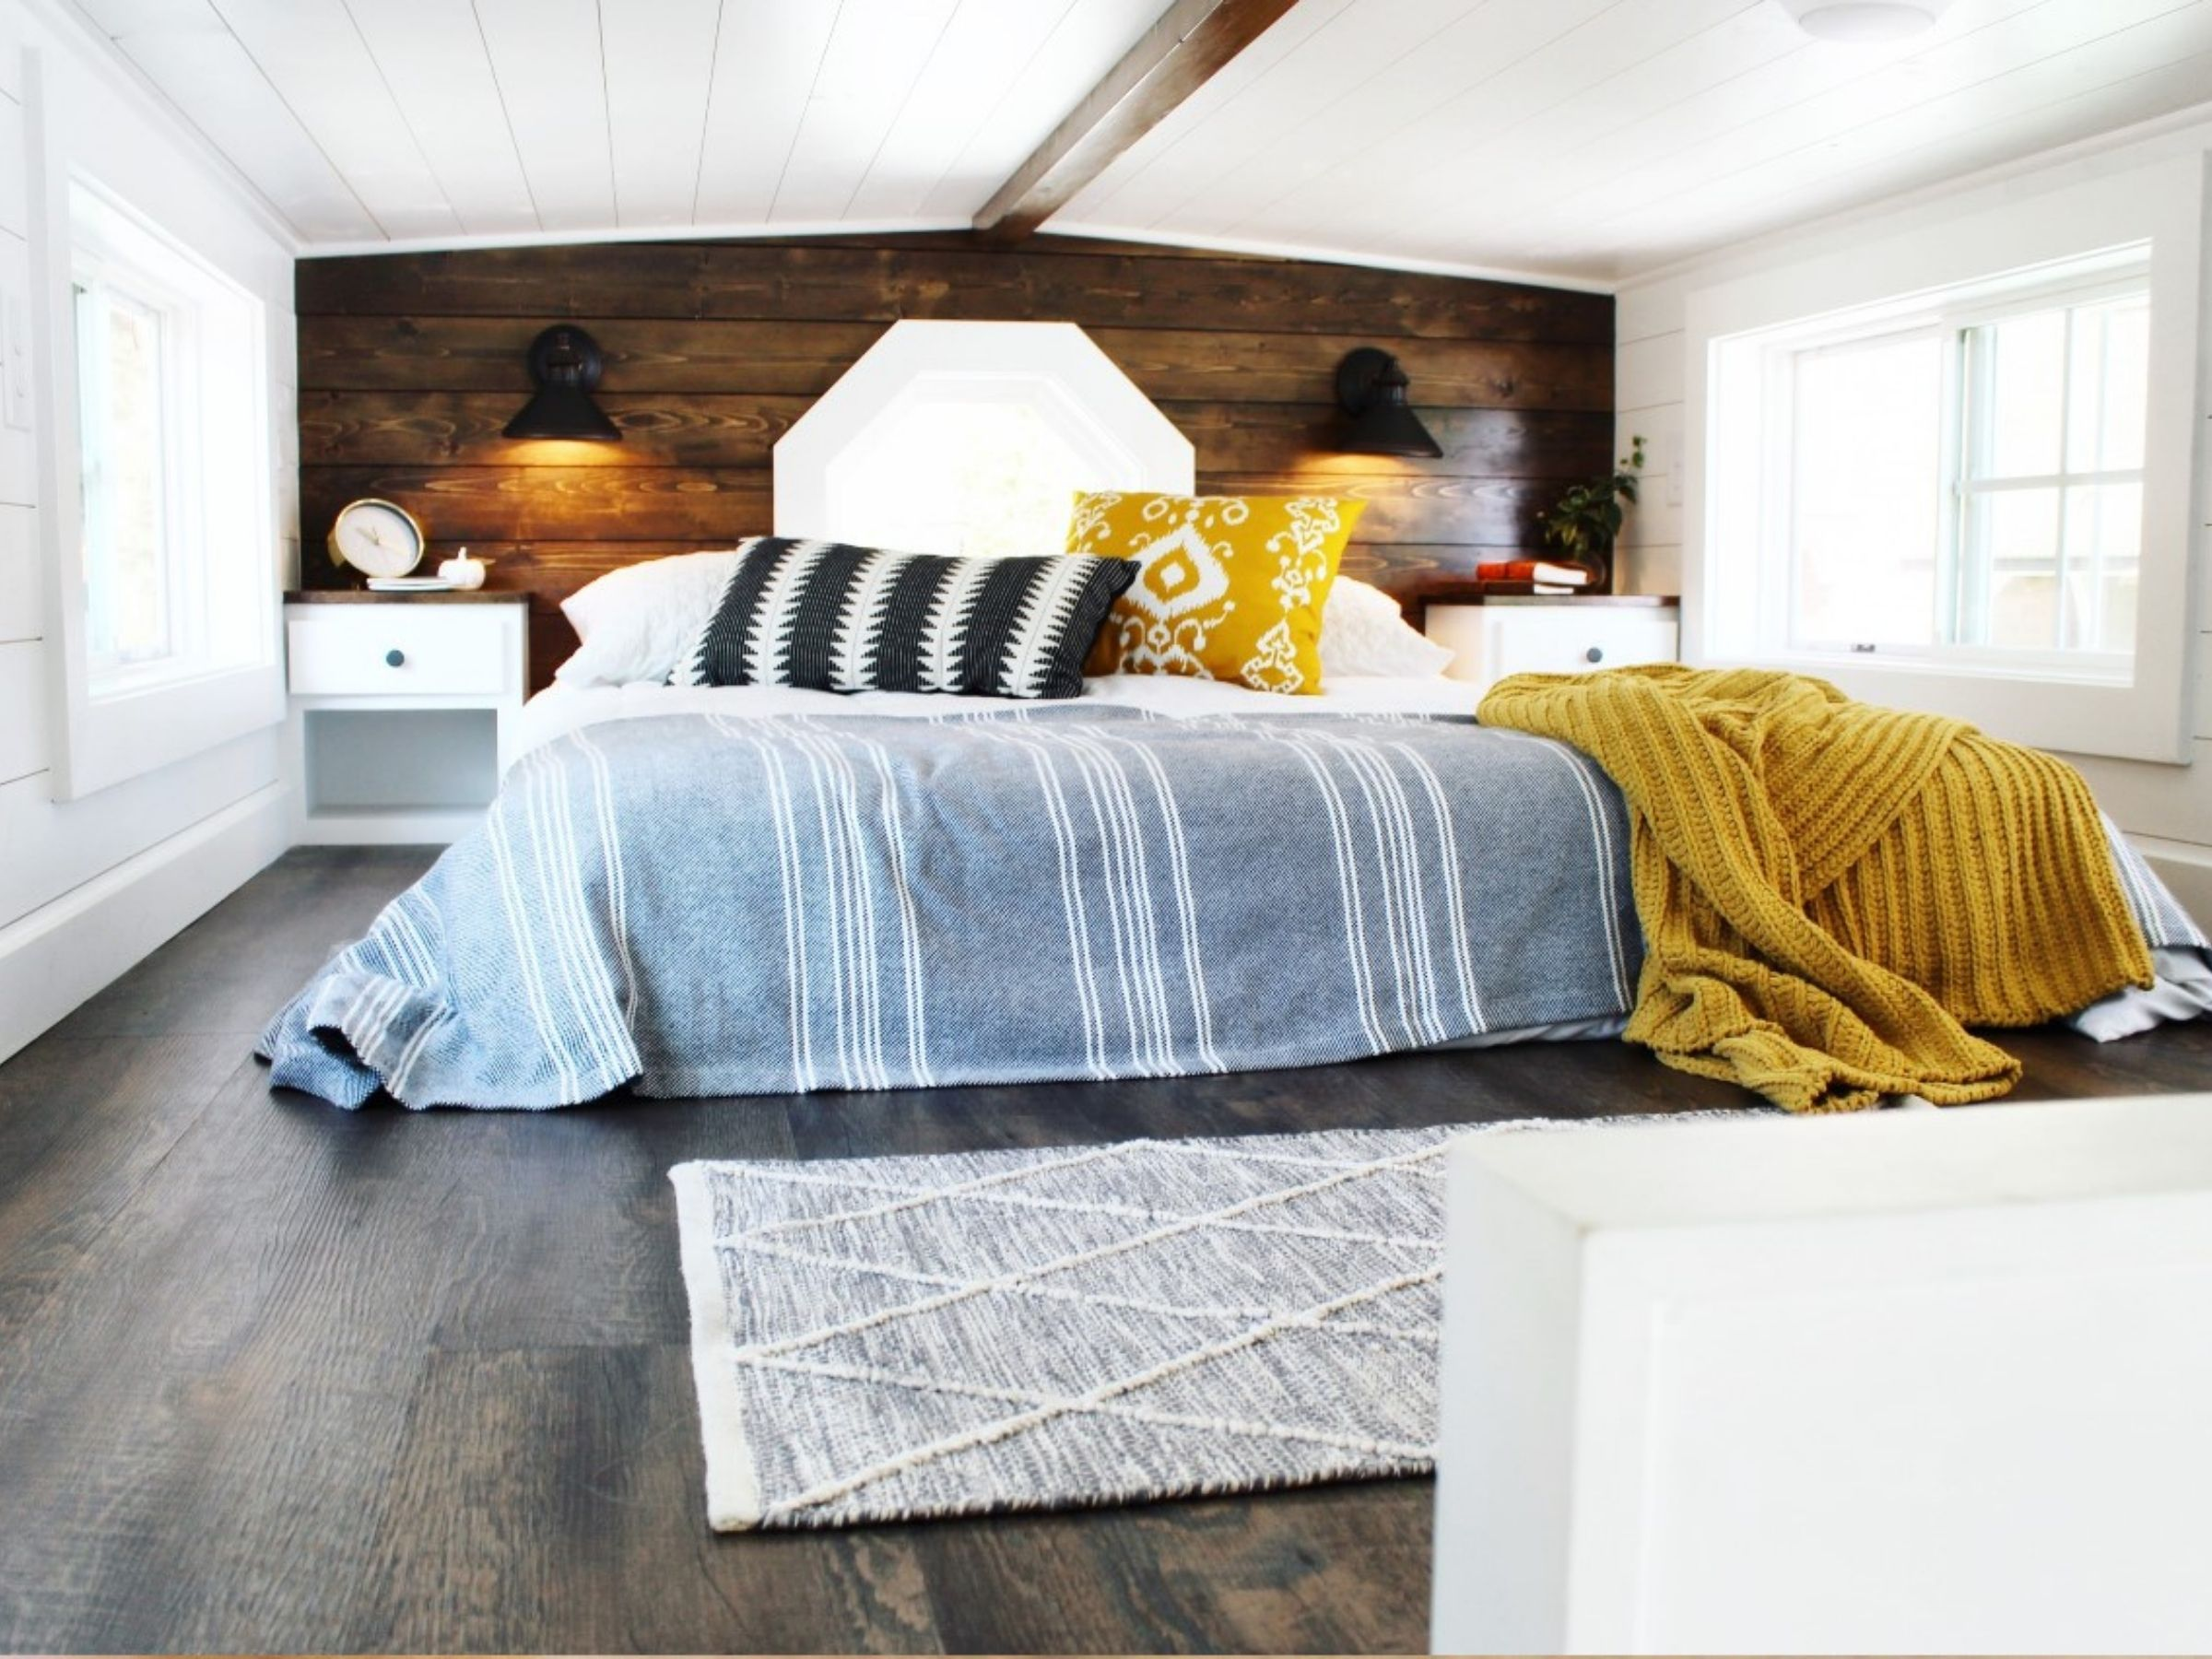 Loft with white and wood walls and mattress against window with pillows and blankets in yellow and blue